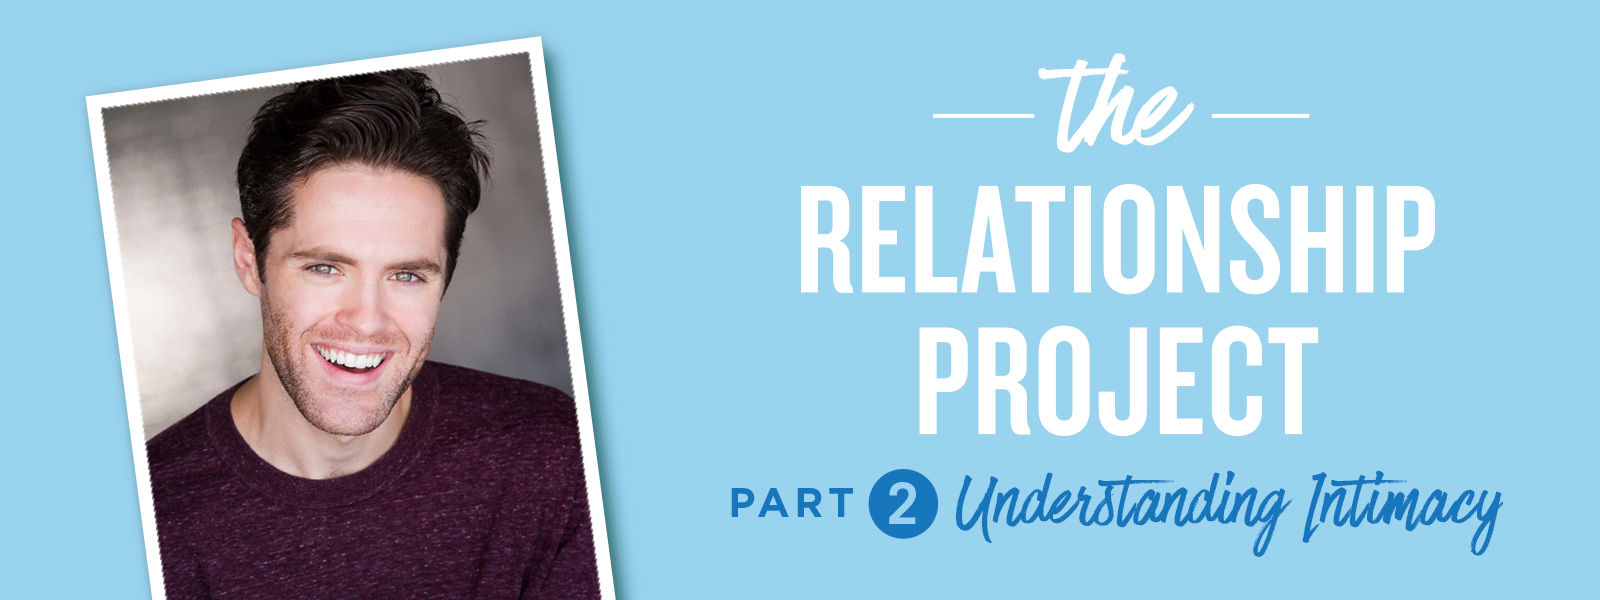 The Relationship Project Part Two: Understanding Intimacy